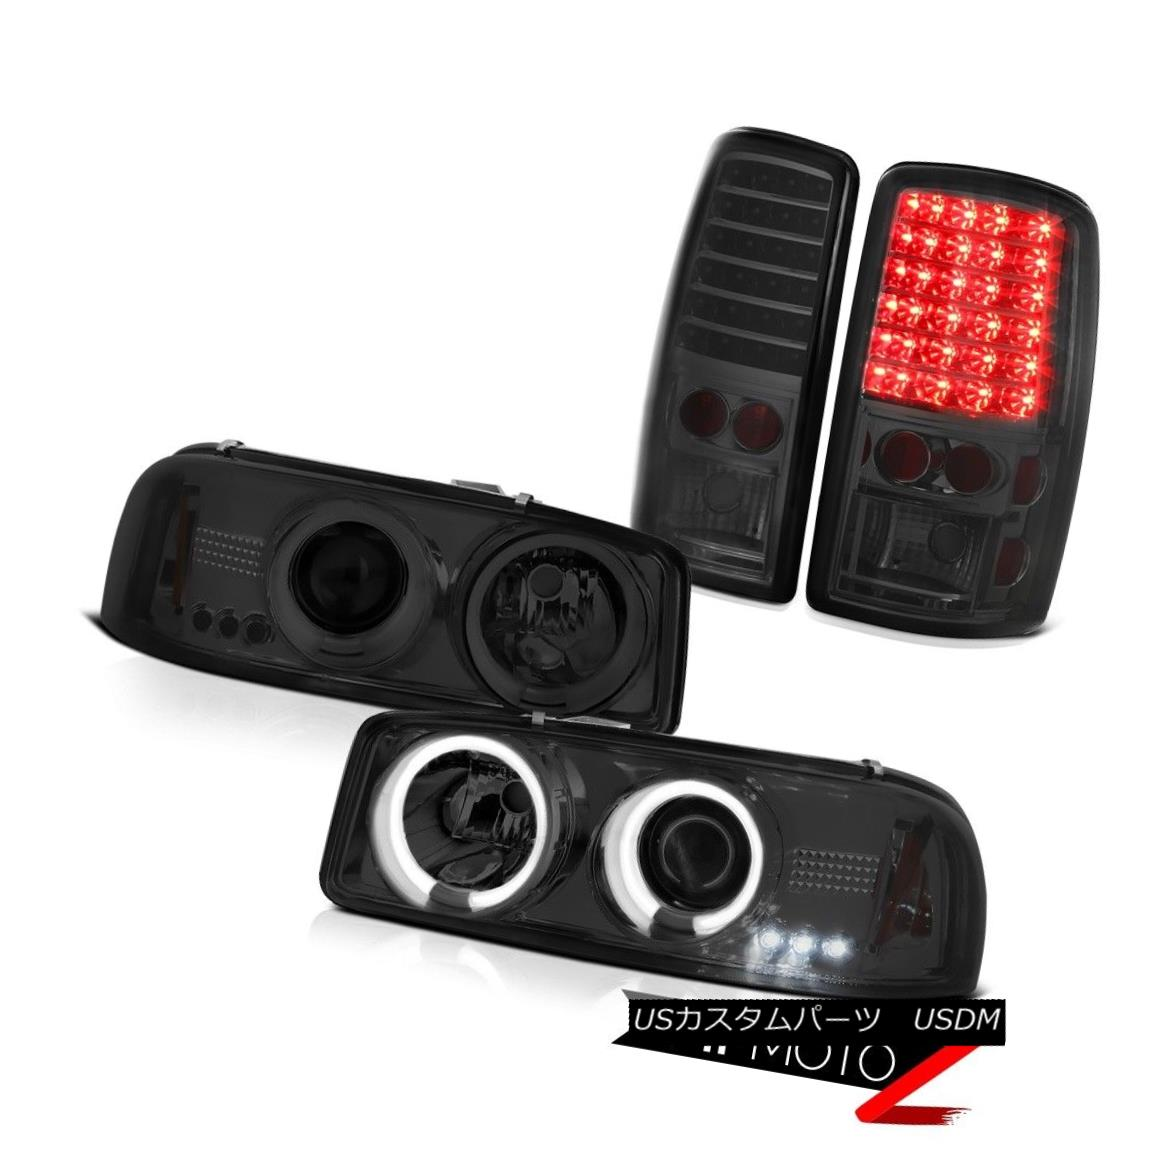 テールライト GMC Denali CCFL Halo Projector Headlights 2000-2006 Yukon Tail Lights LED Tinted GMC Denali CCFL Haloプロジェクターヘッドライト2000-2006 Yukon Tail Lights LED Tinted